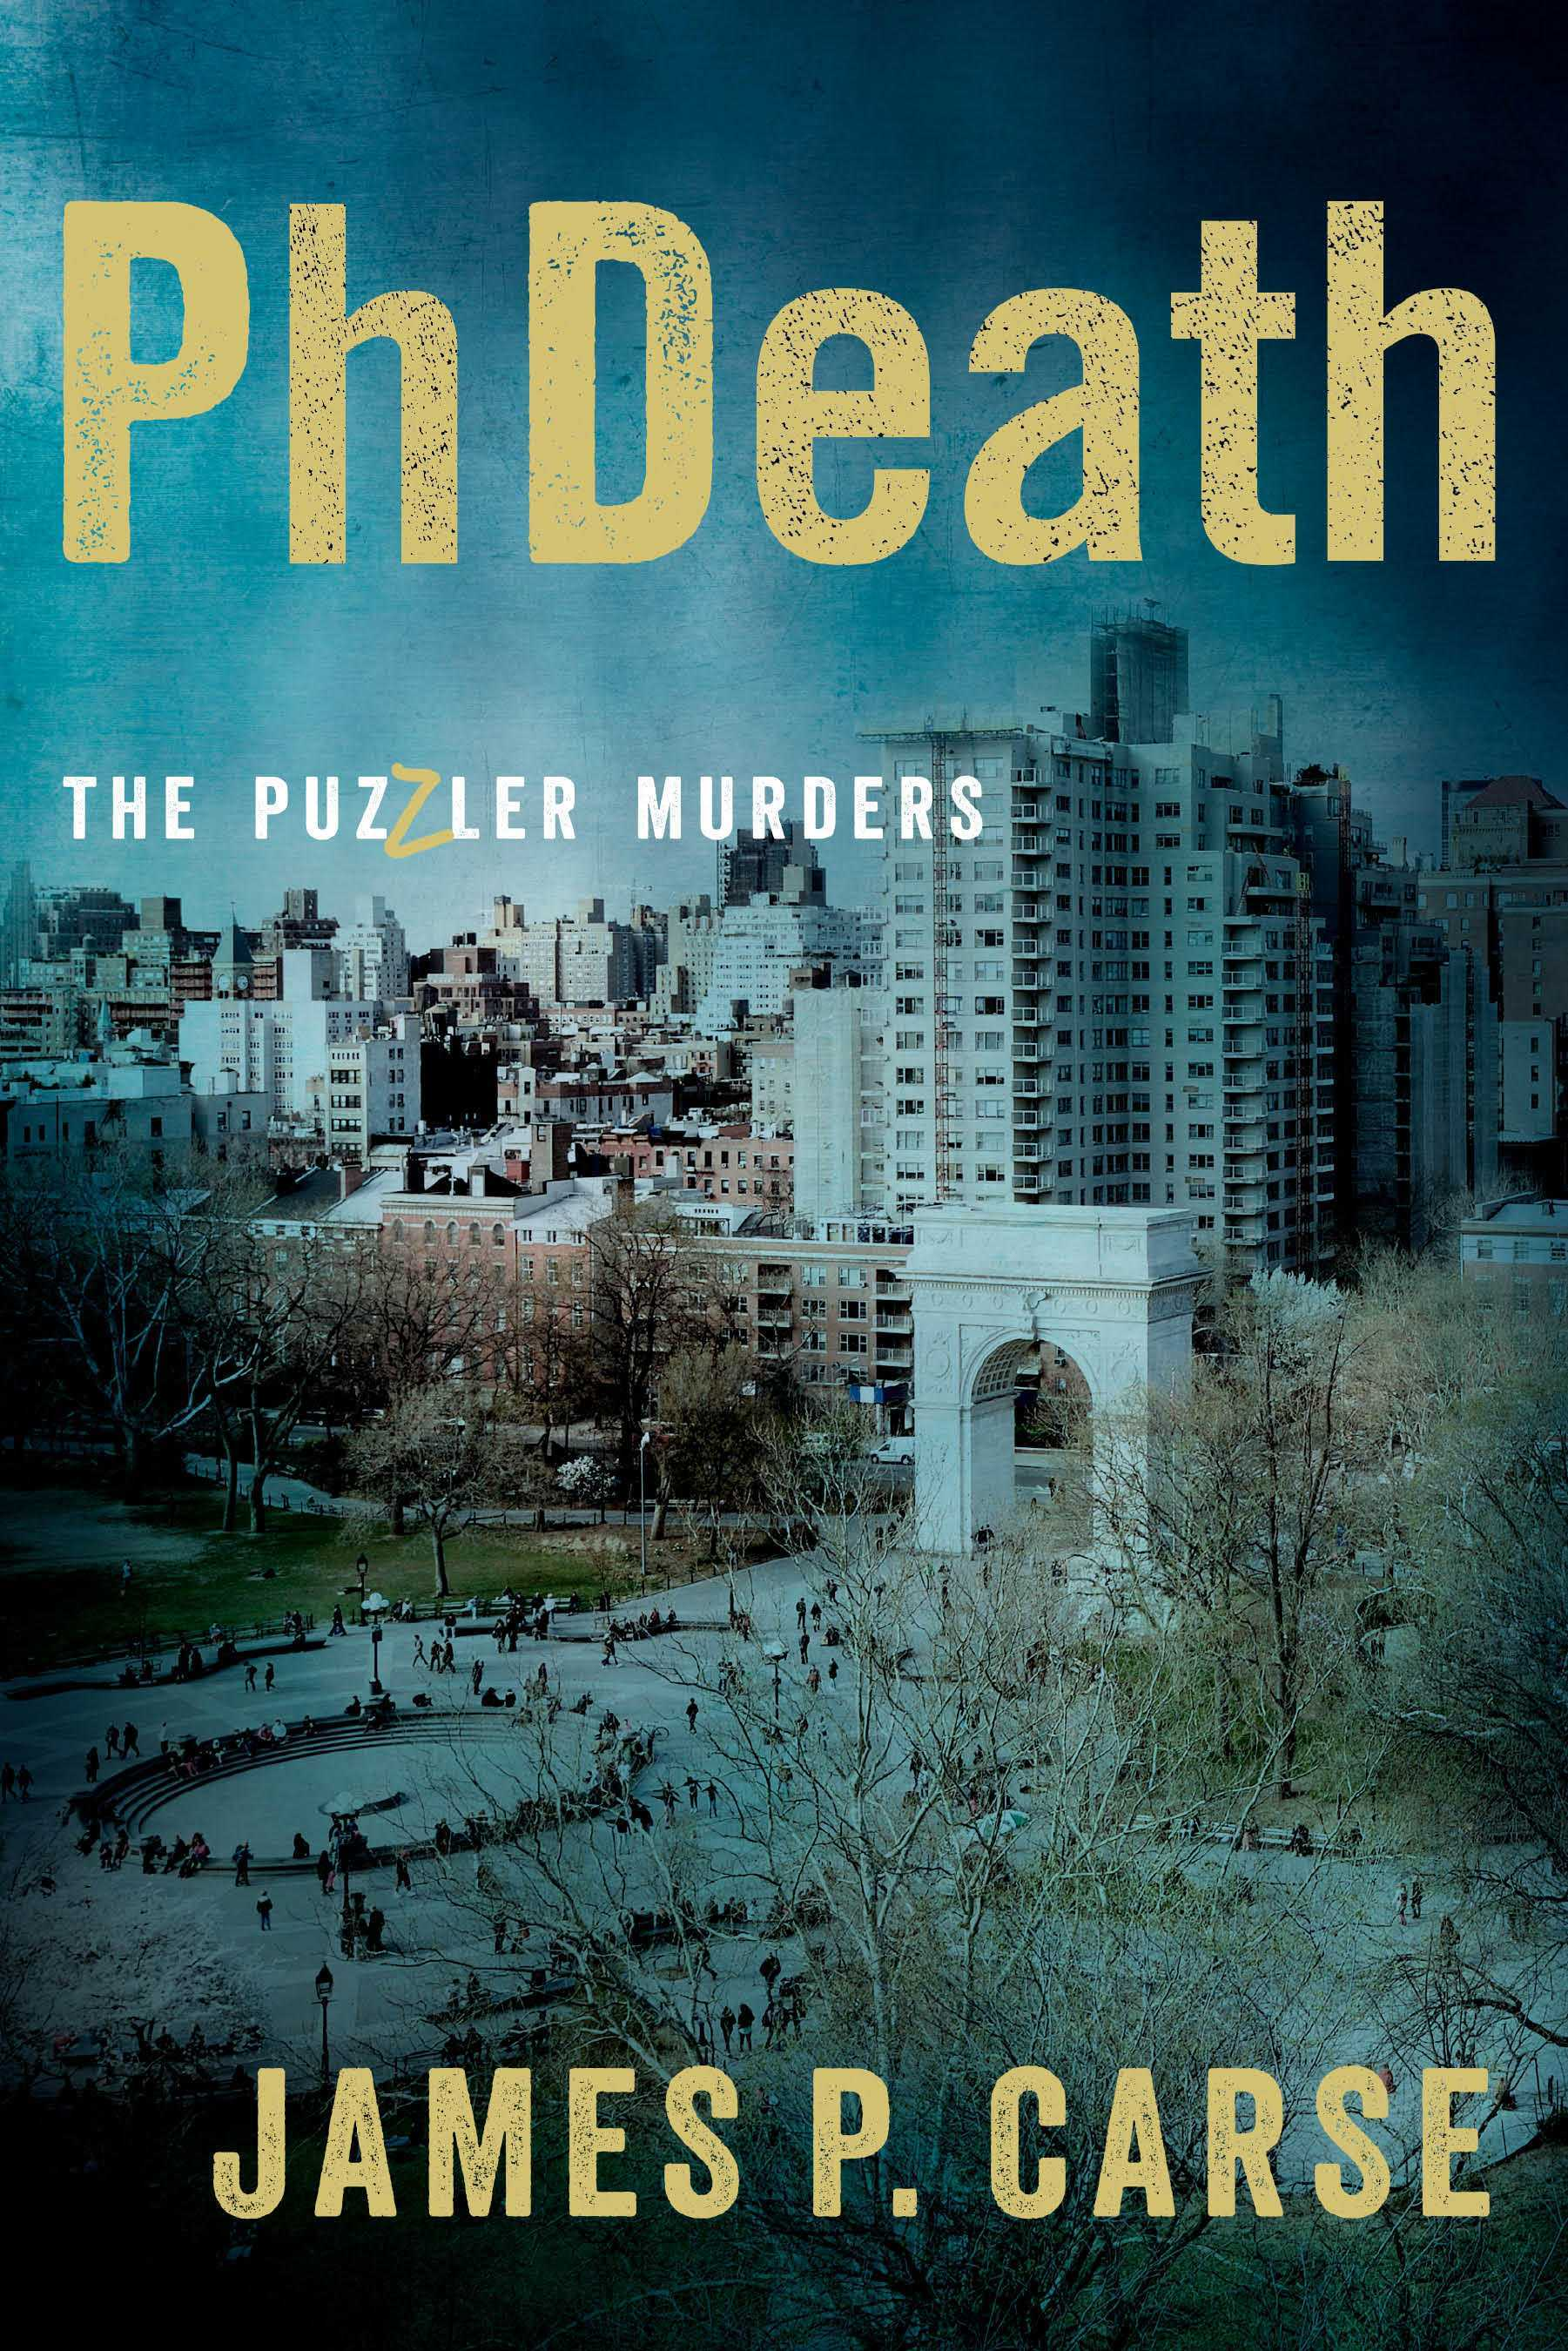 NYU students will find the setting of PHDeath especially relatable, it being the NYU campus.